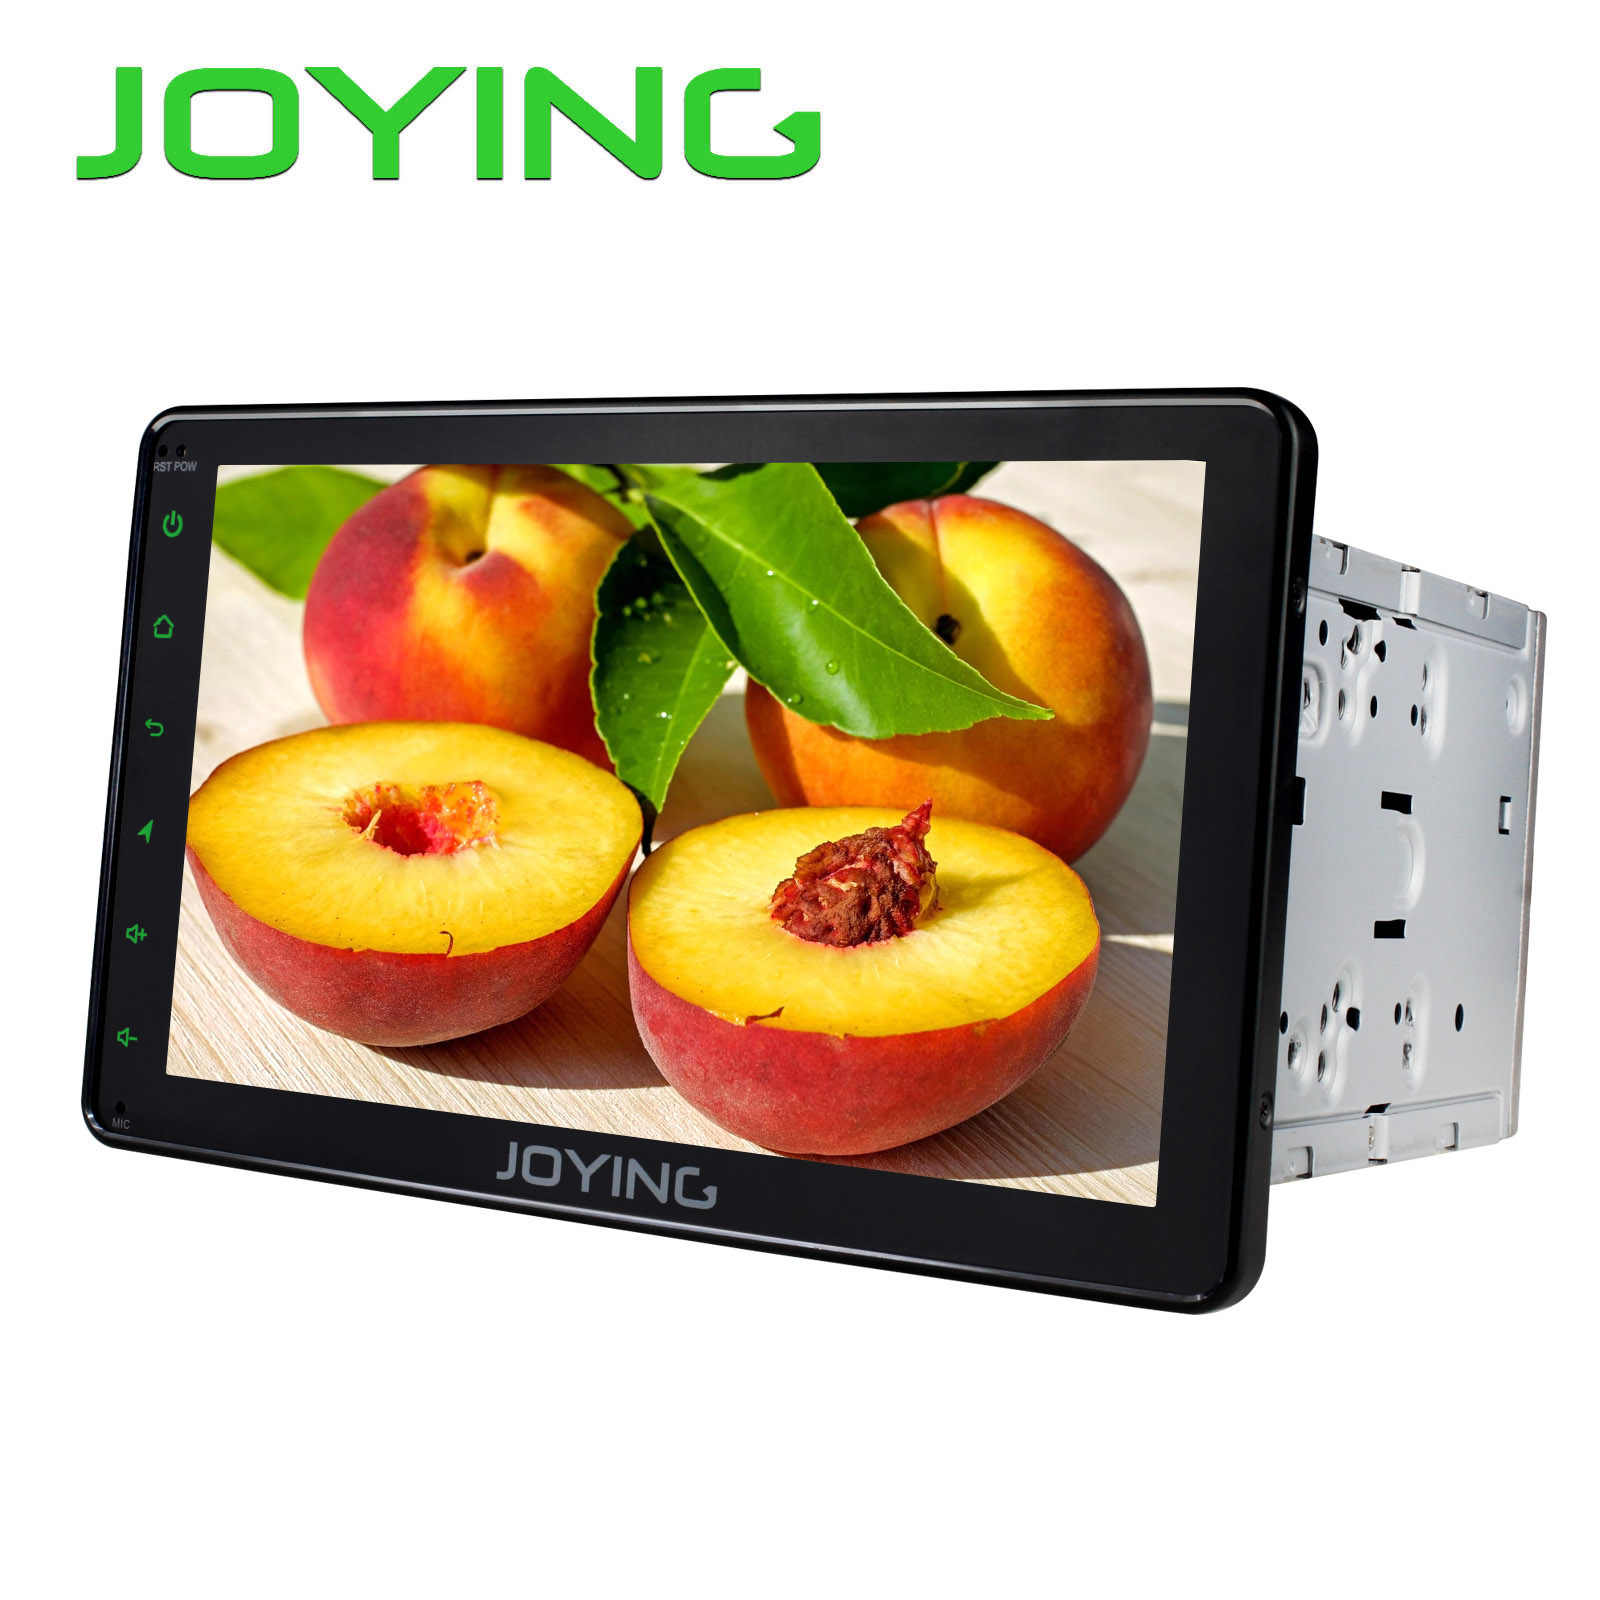 JOYING 2 Din Auto Radio 2GB Android 8.1 Octa Core GPS Ontvanger WIFI 8 inch HD display ondersteuning Spiegel link/Voice Command head unit